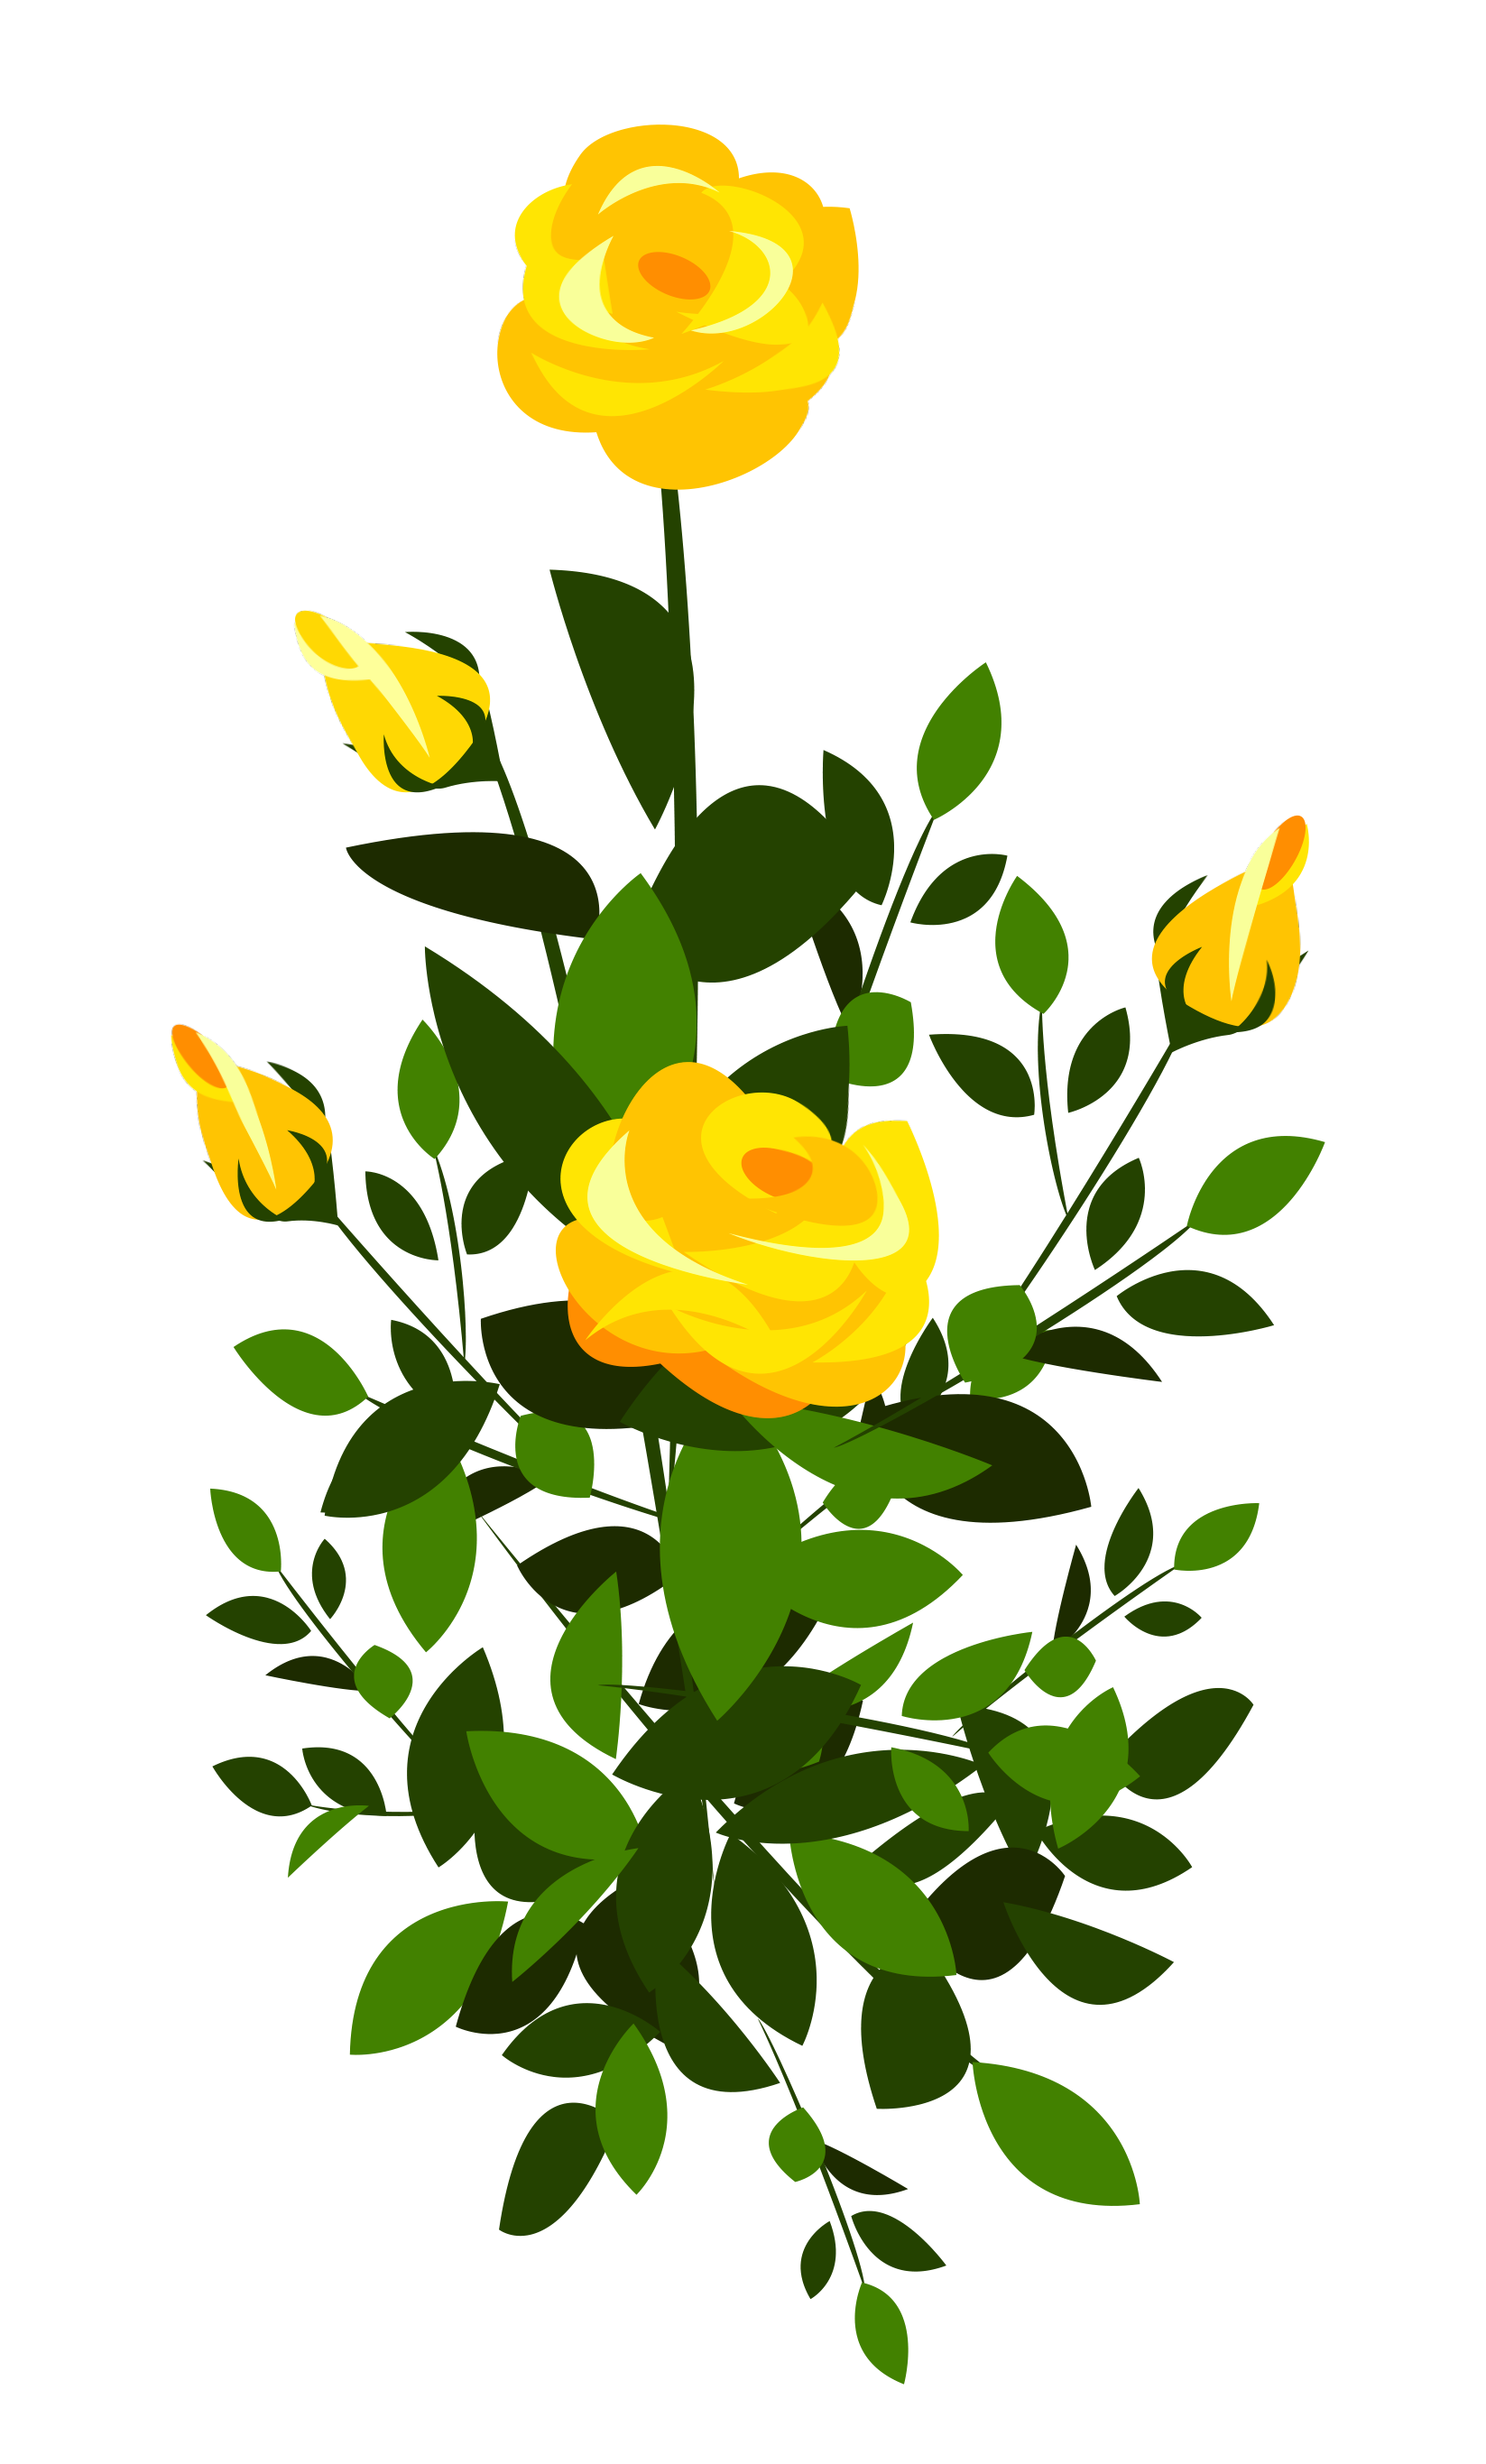 Bush clipart winter. Yellow rose png image